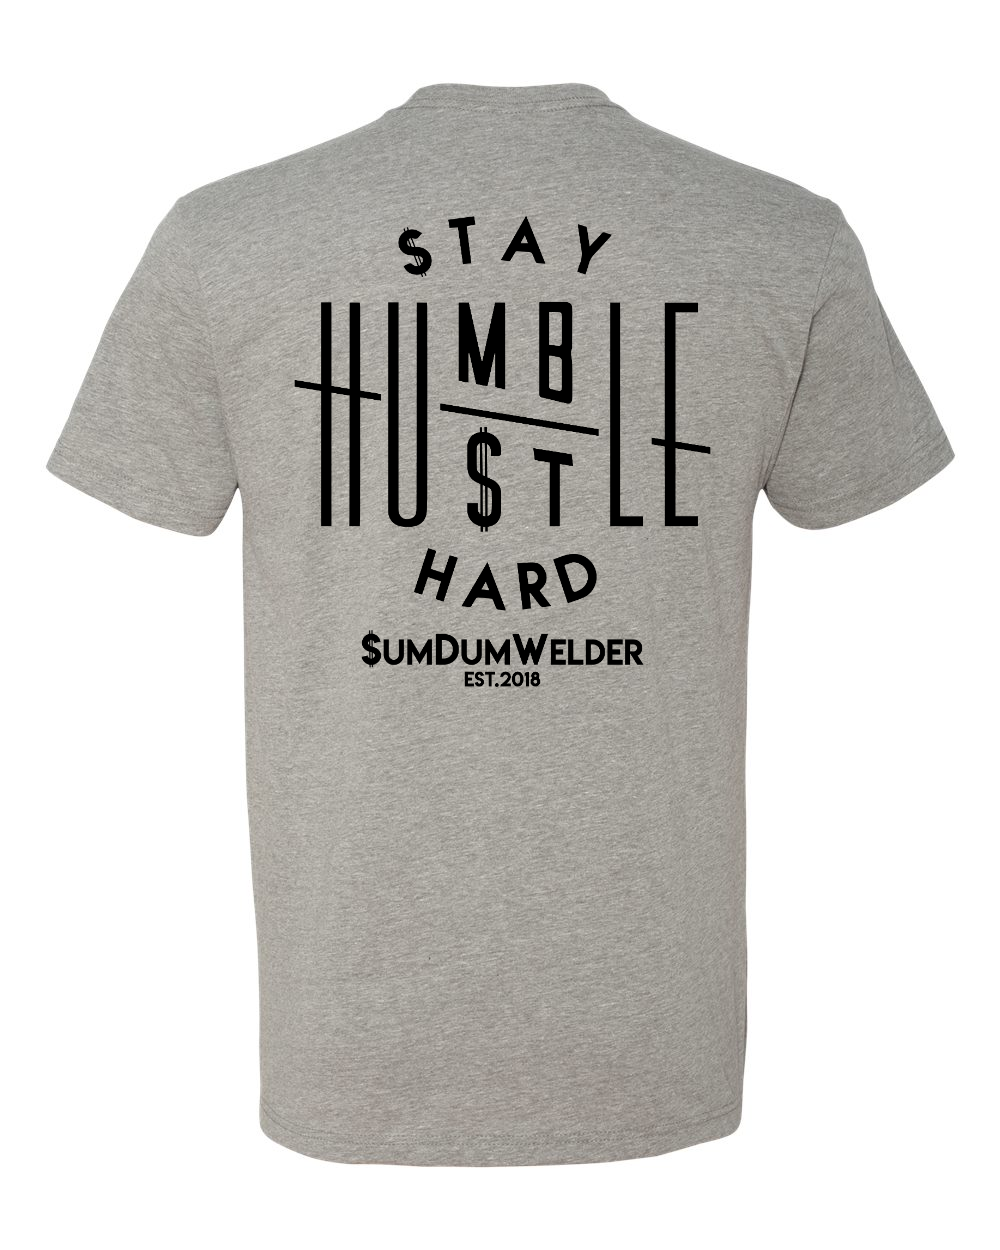 Stay Humble & Hustle Hard FB - SDW LC - Black logo